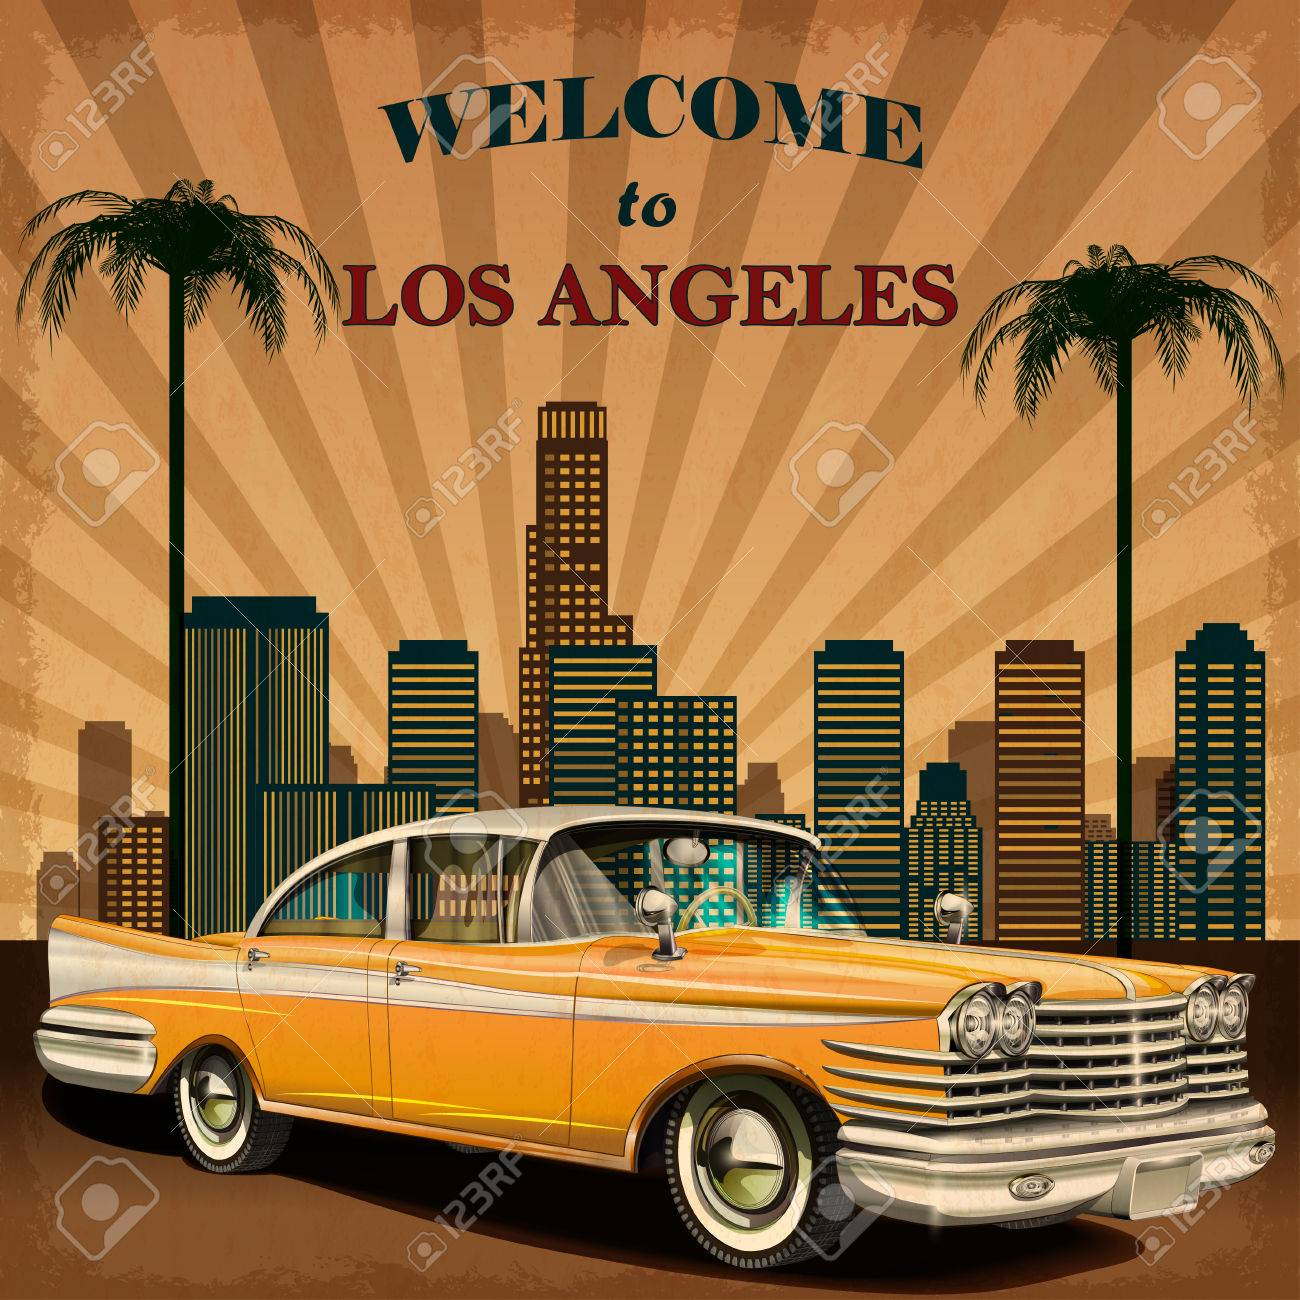 Welcome to Los Angeles retro poster. - 71337745